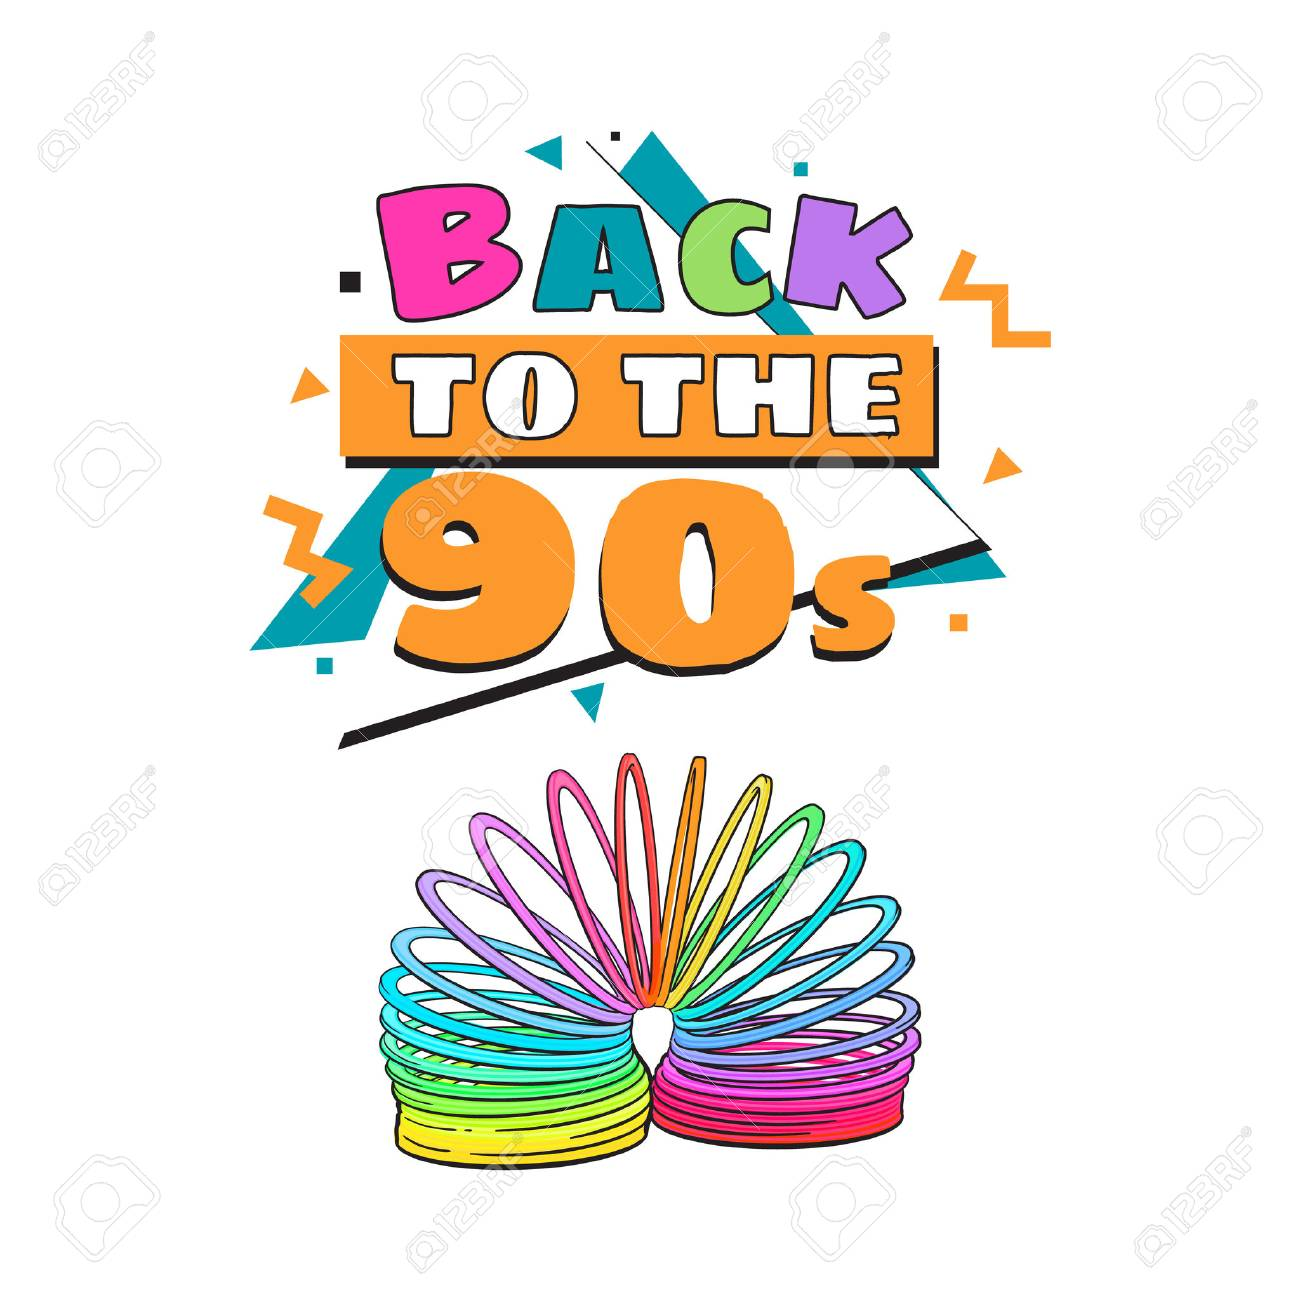 memphis retro style back to the 90s poster template with rainbow